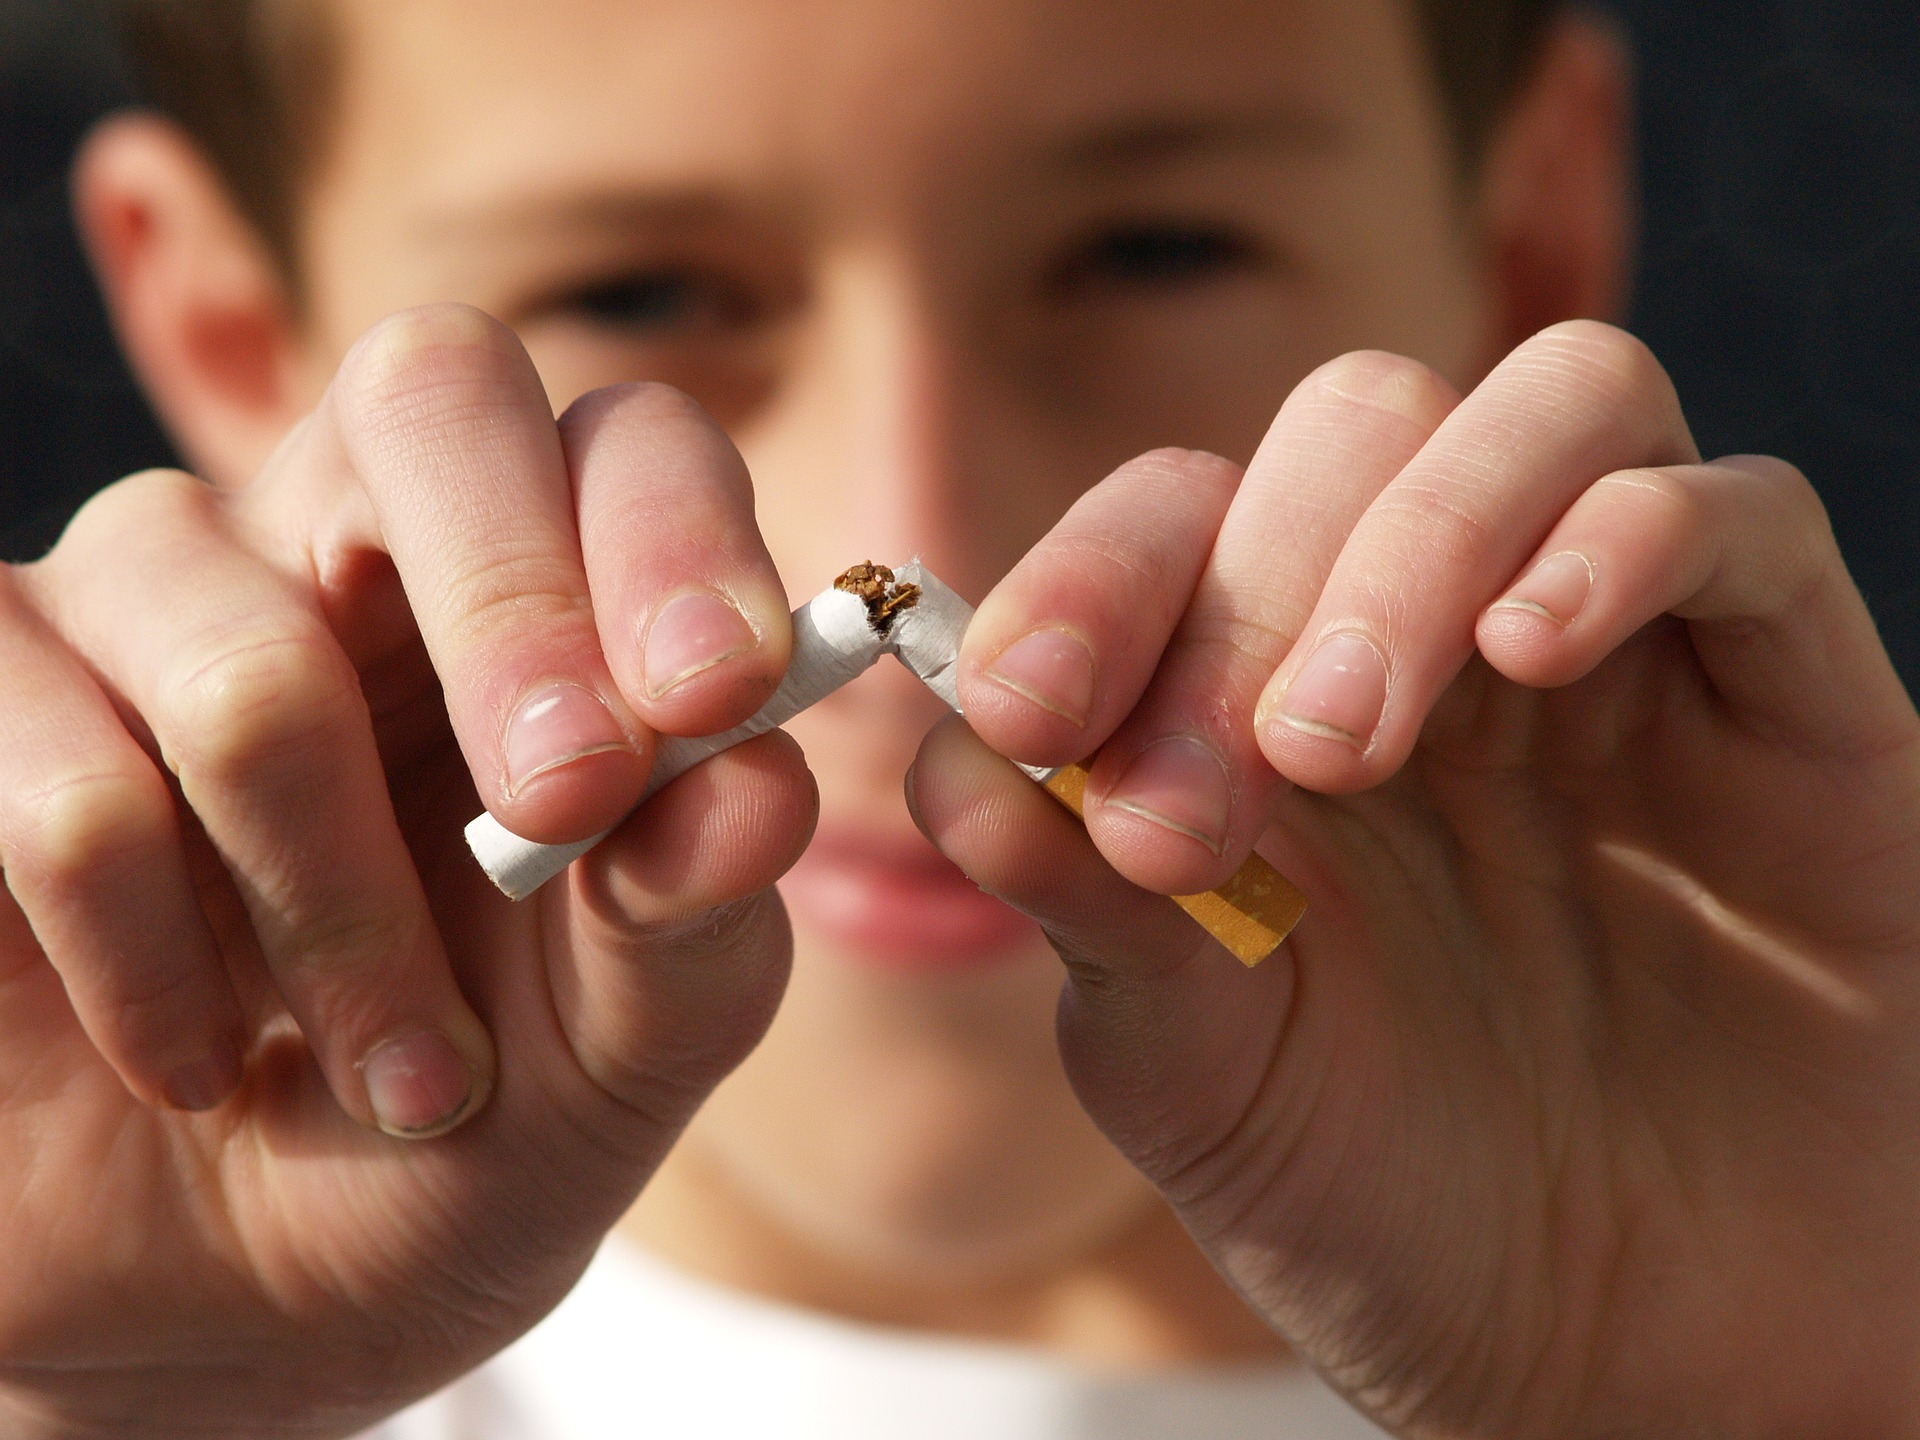 Money You Save By Becoming Smoke-Free